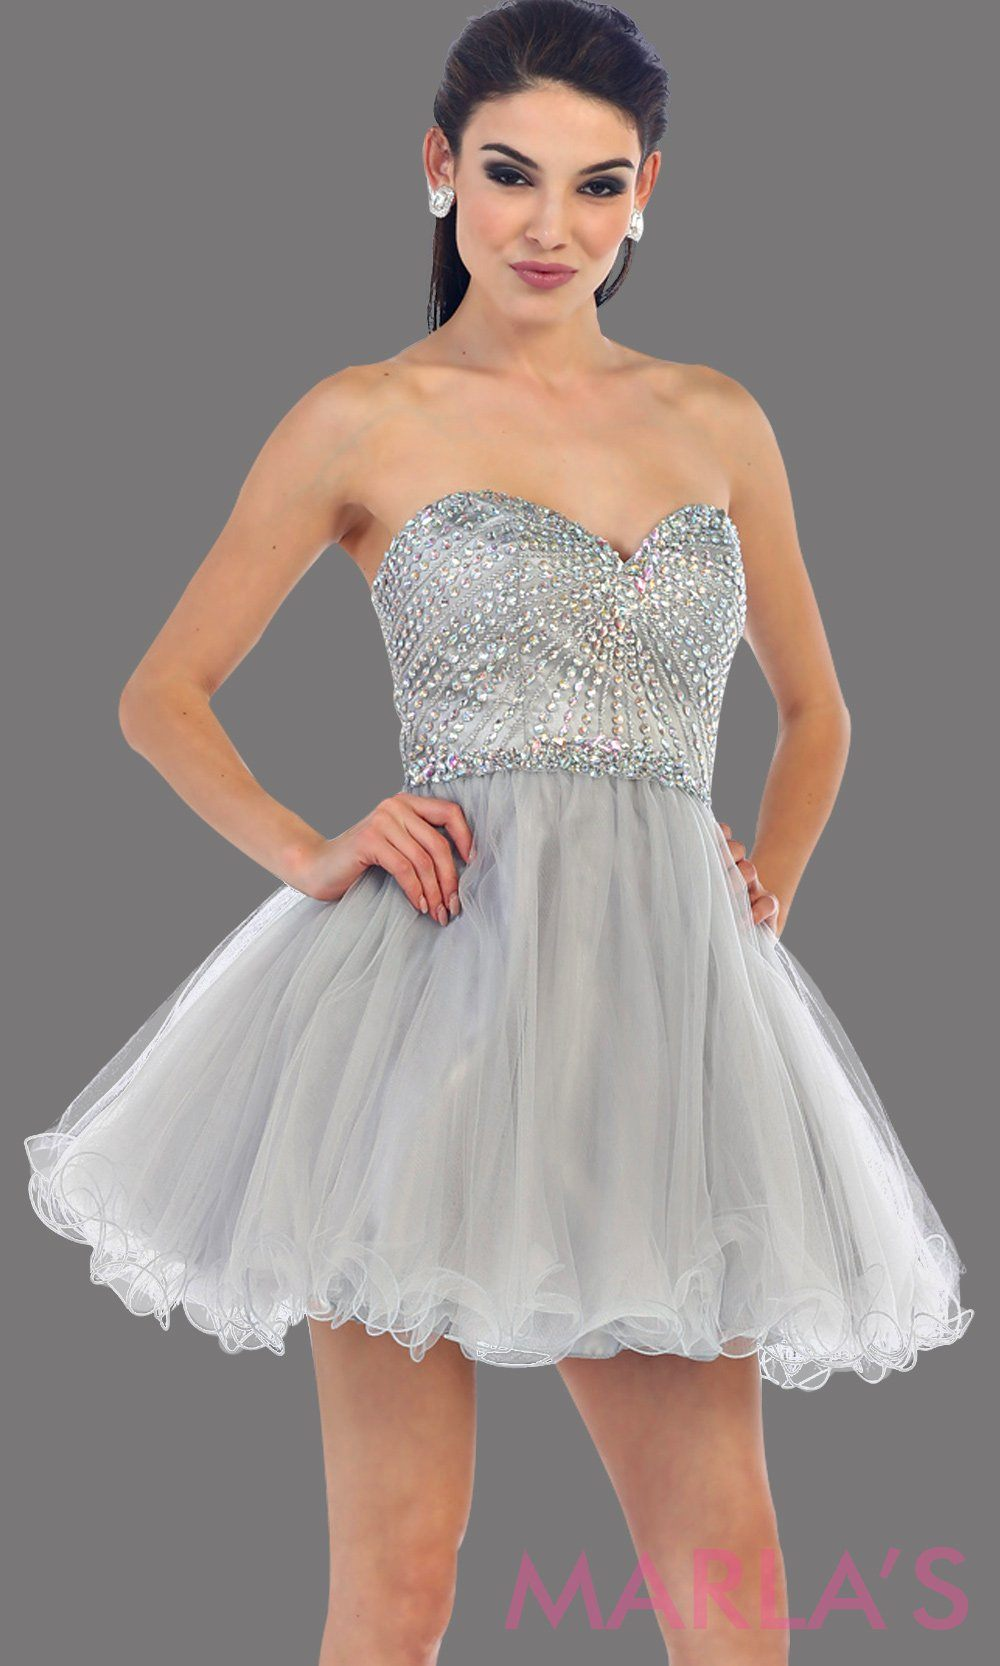 Short puffy gray strapless dress with a beaded bodice. It has a corset bodice with tone on tone beading. This is perfect for grade 8 graduation, homecoming, and silver damas. Available in plus size